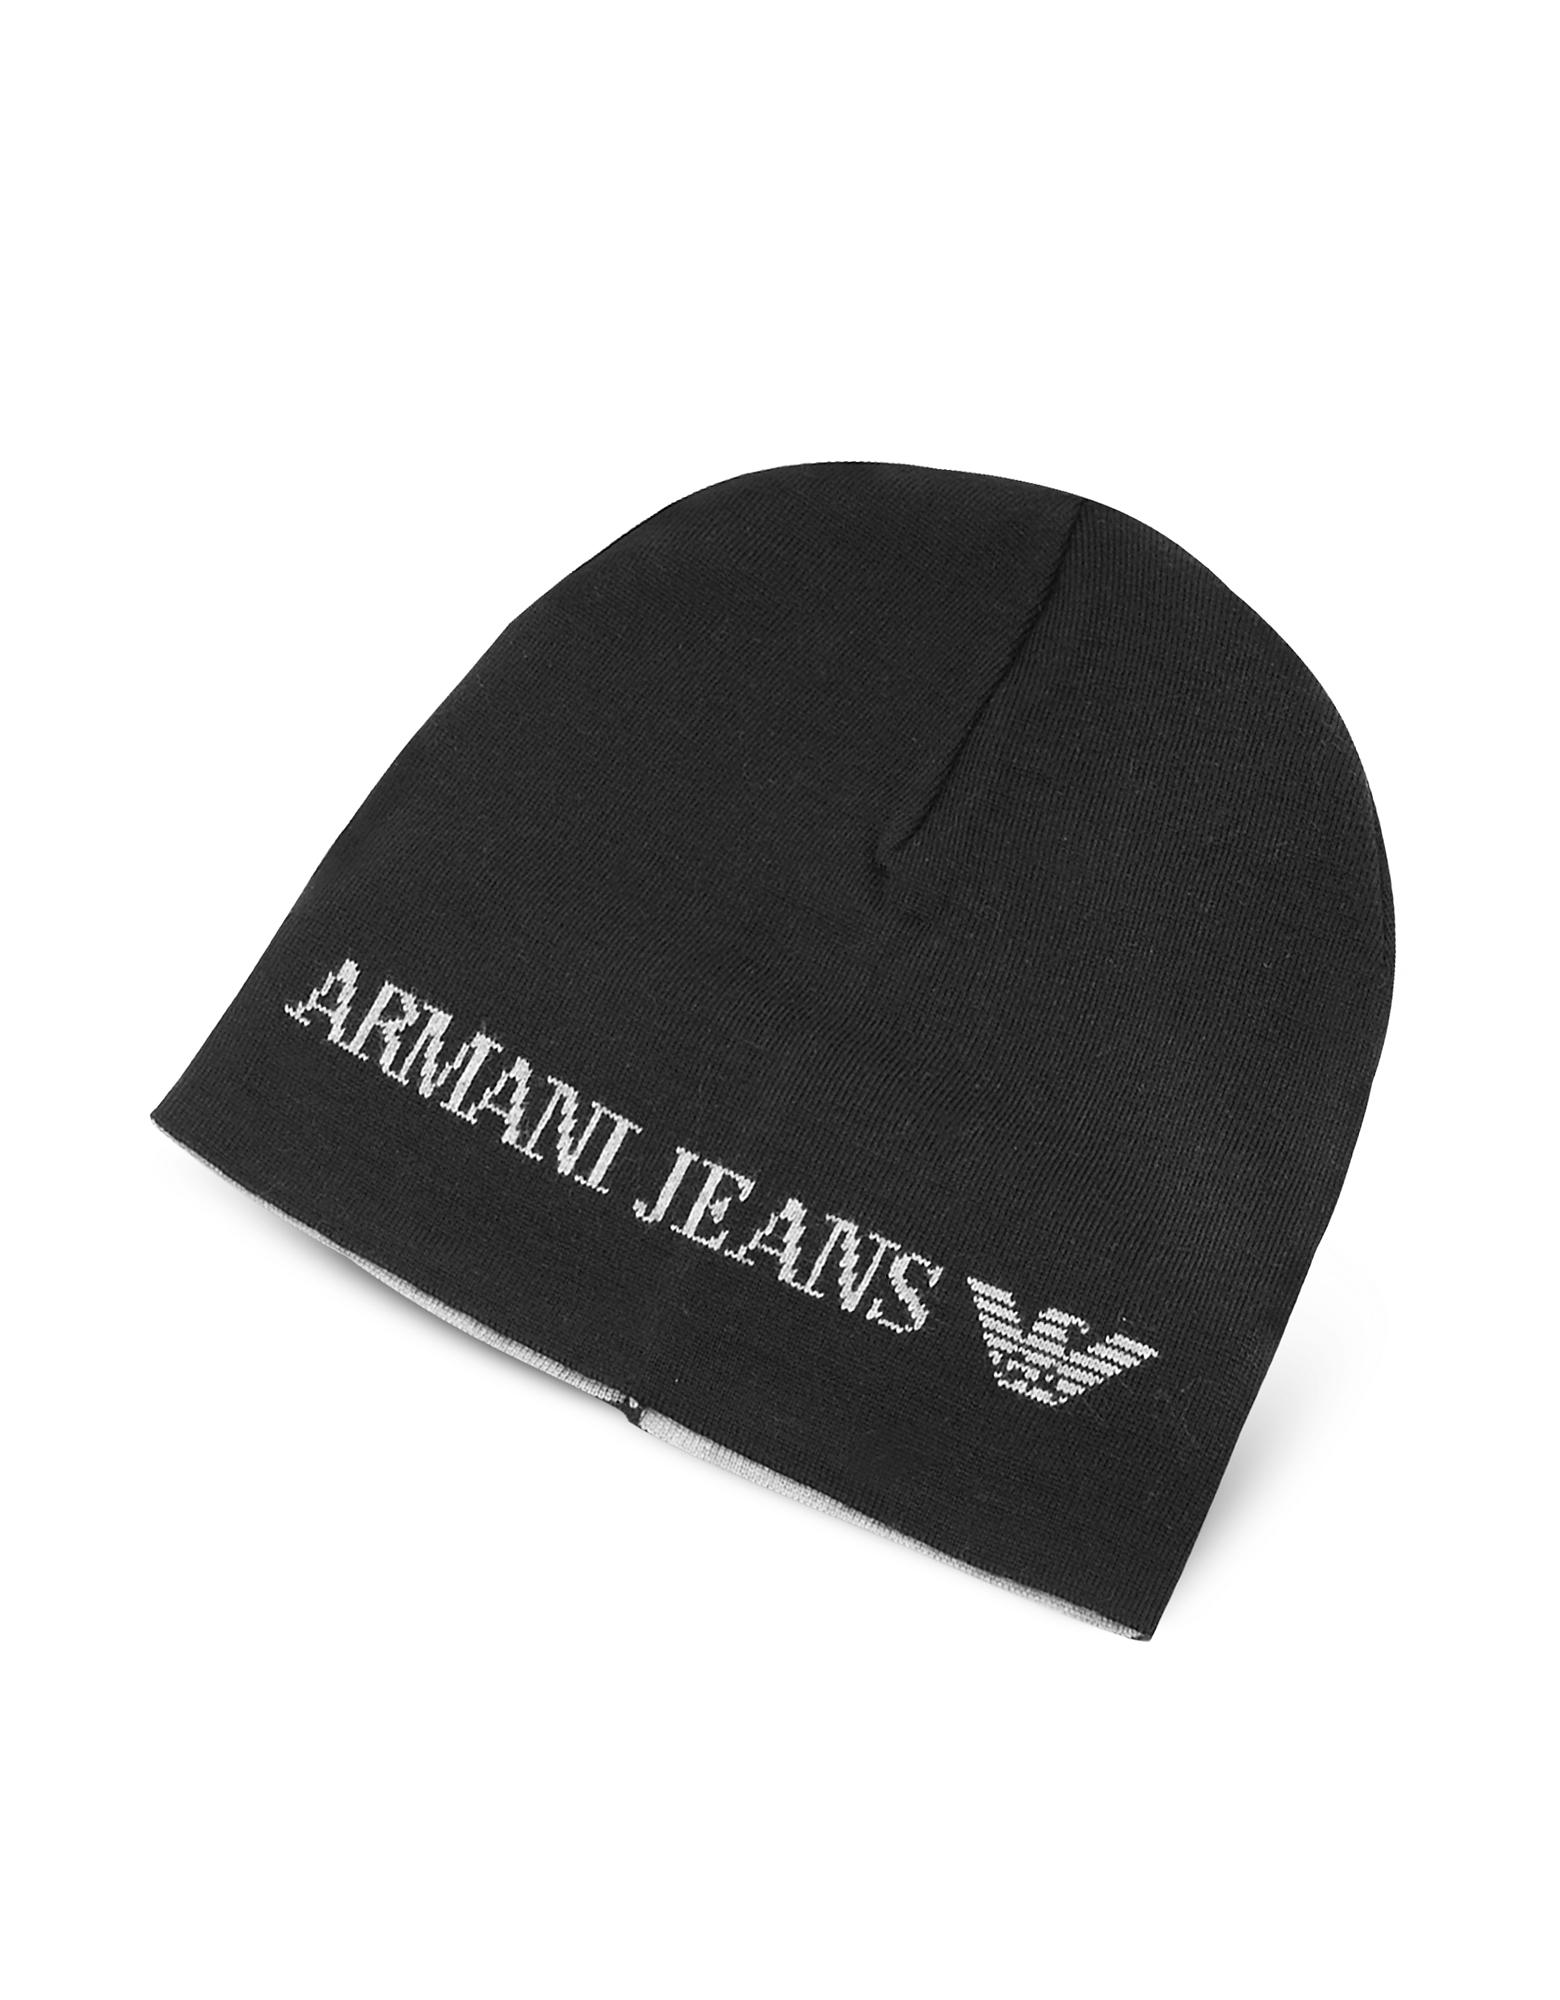 2165f315291 Lyst - Armani Jeans Solid Wool Blend Men s Beanie Hat in Black for Men